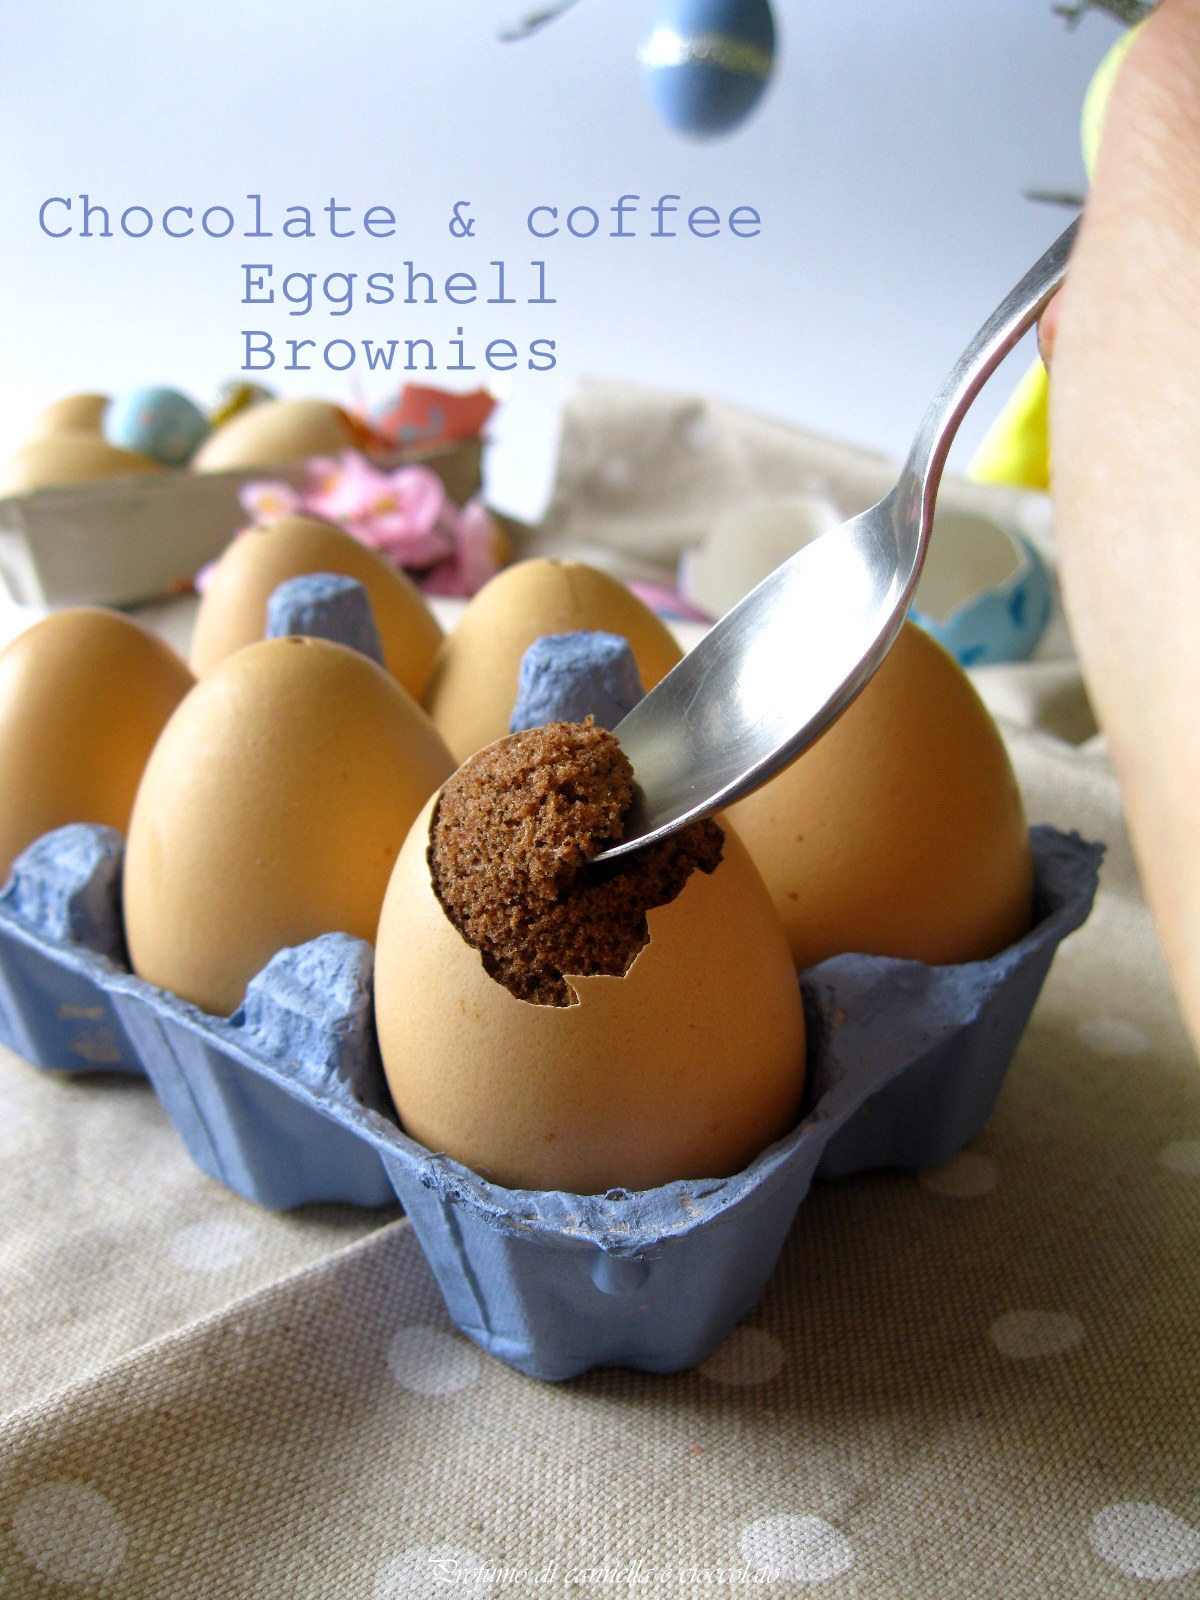 egg shell brownies